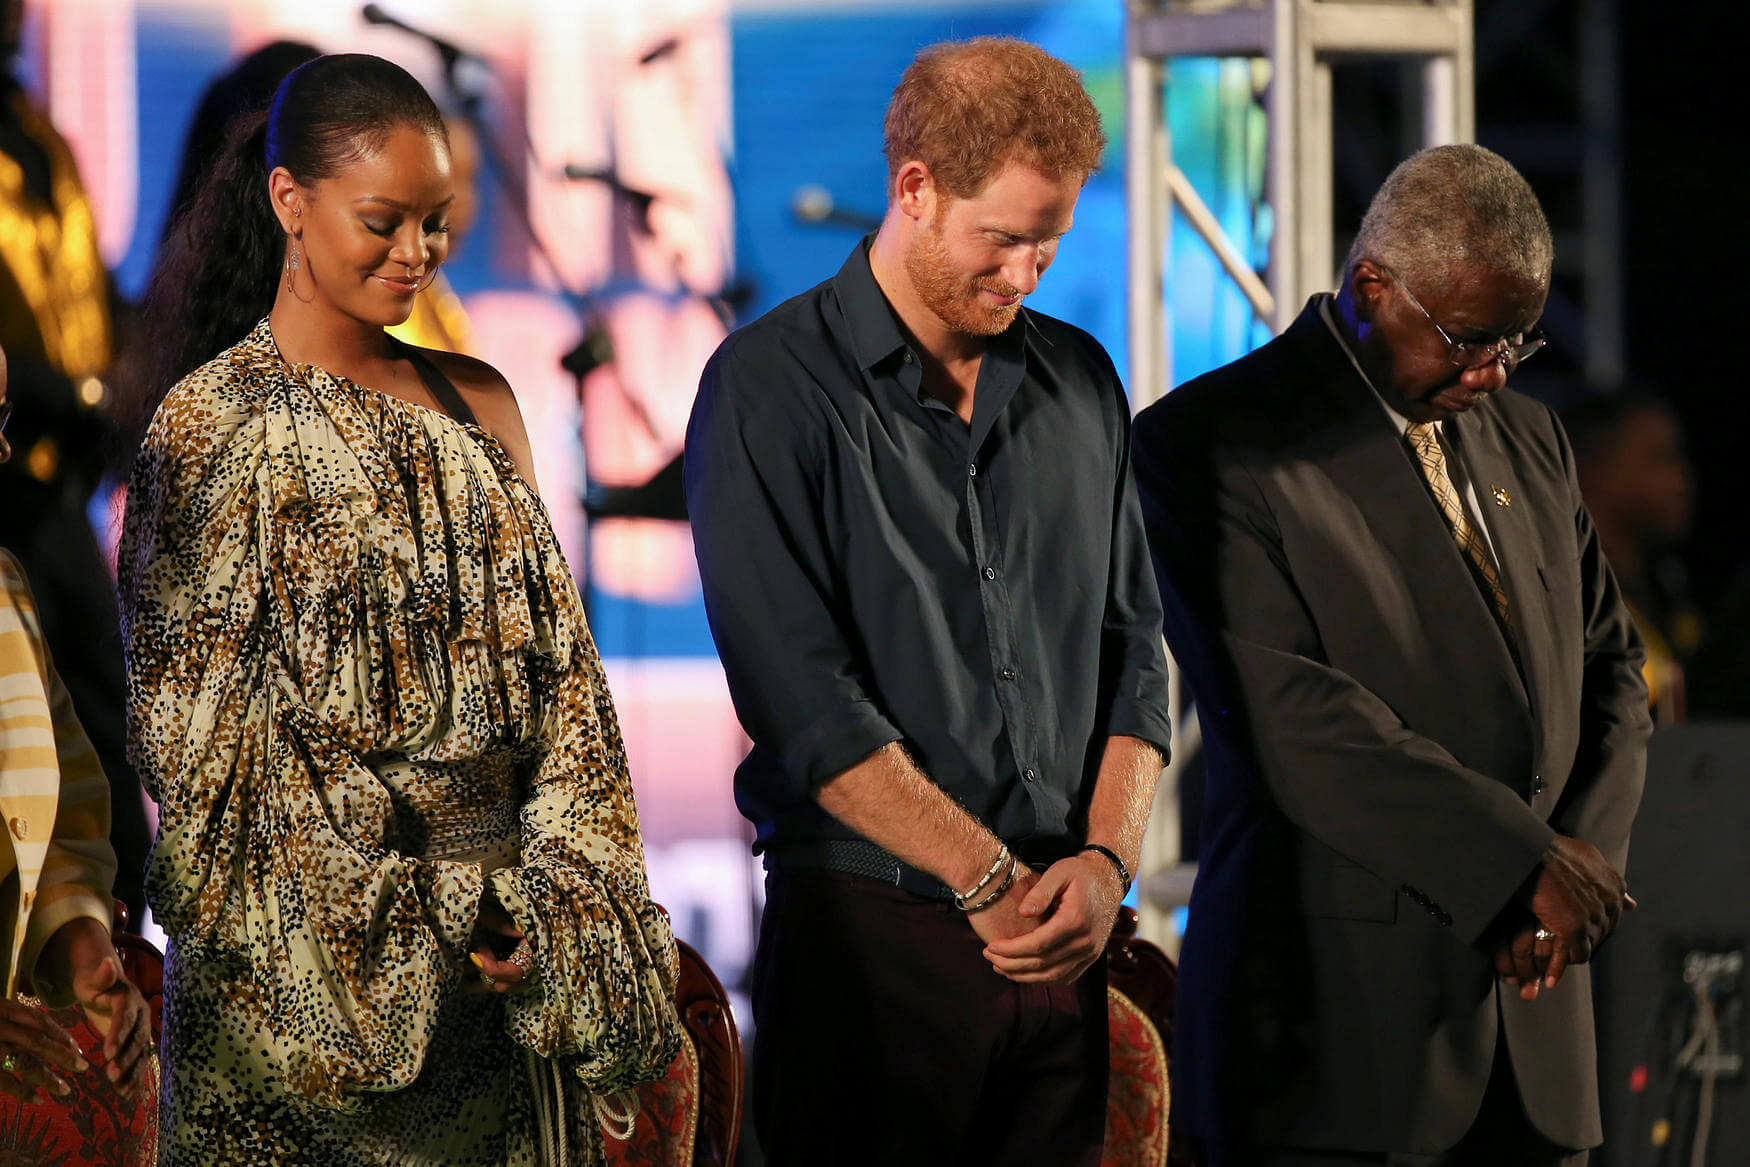 Prince Harry celebrates Barbados' independence with Rihanna, take HIV test together